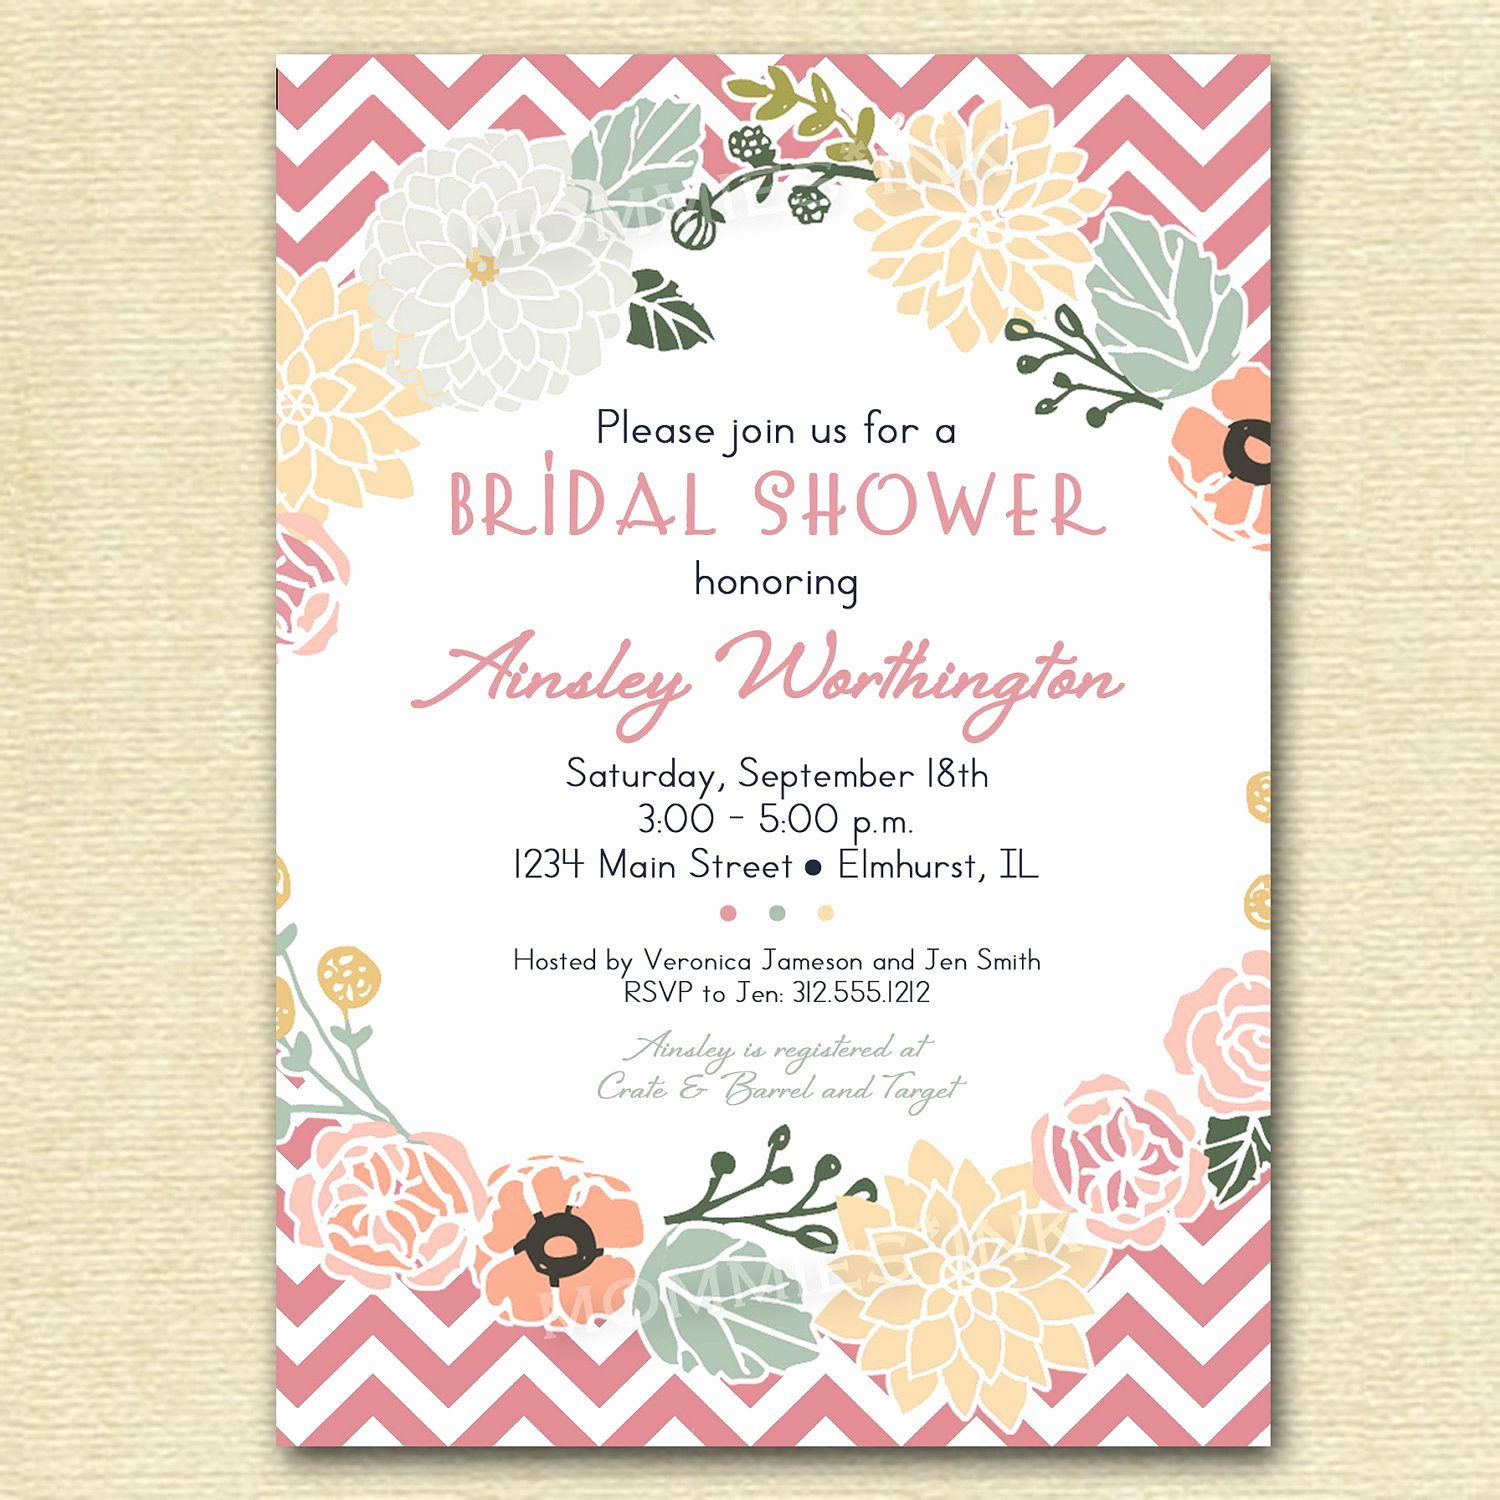 Bridal Shower Invitation Template Lovely event Invitation Graduation Invitations New Invitation